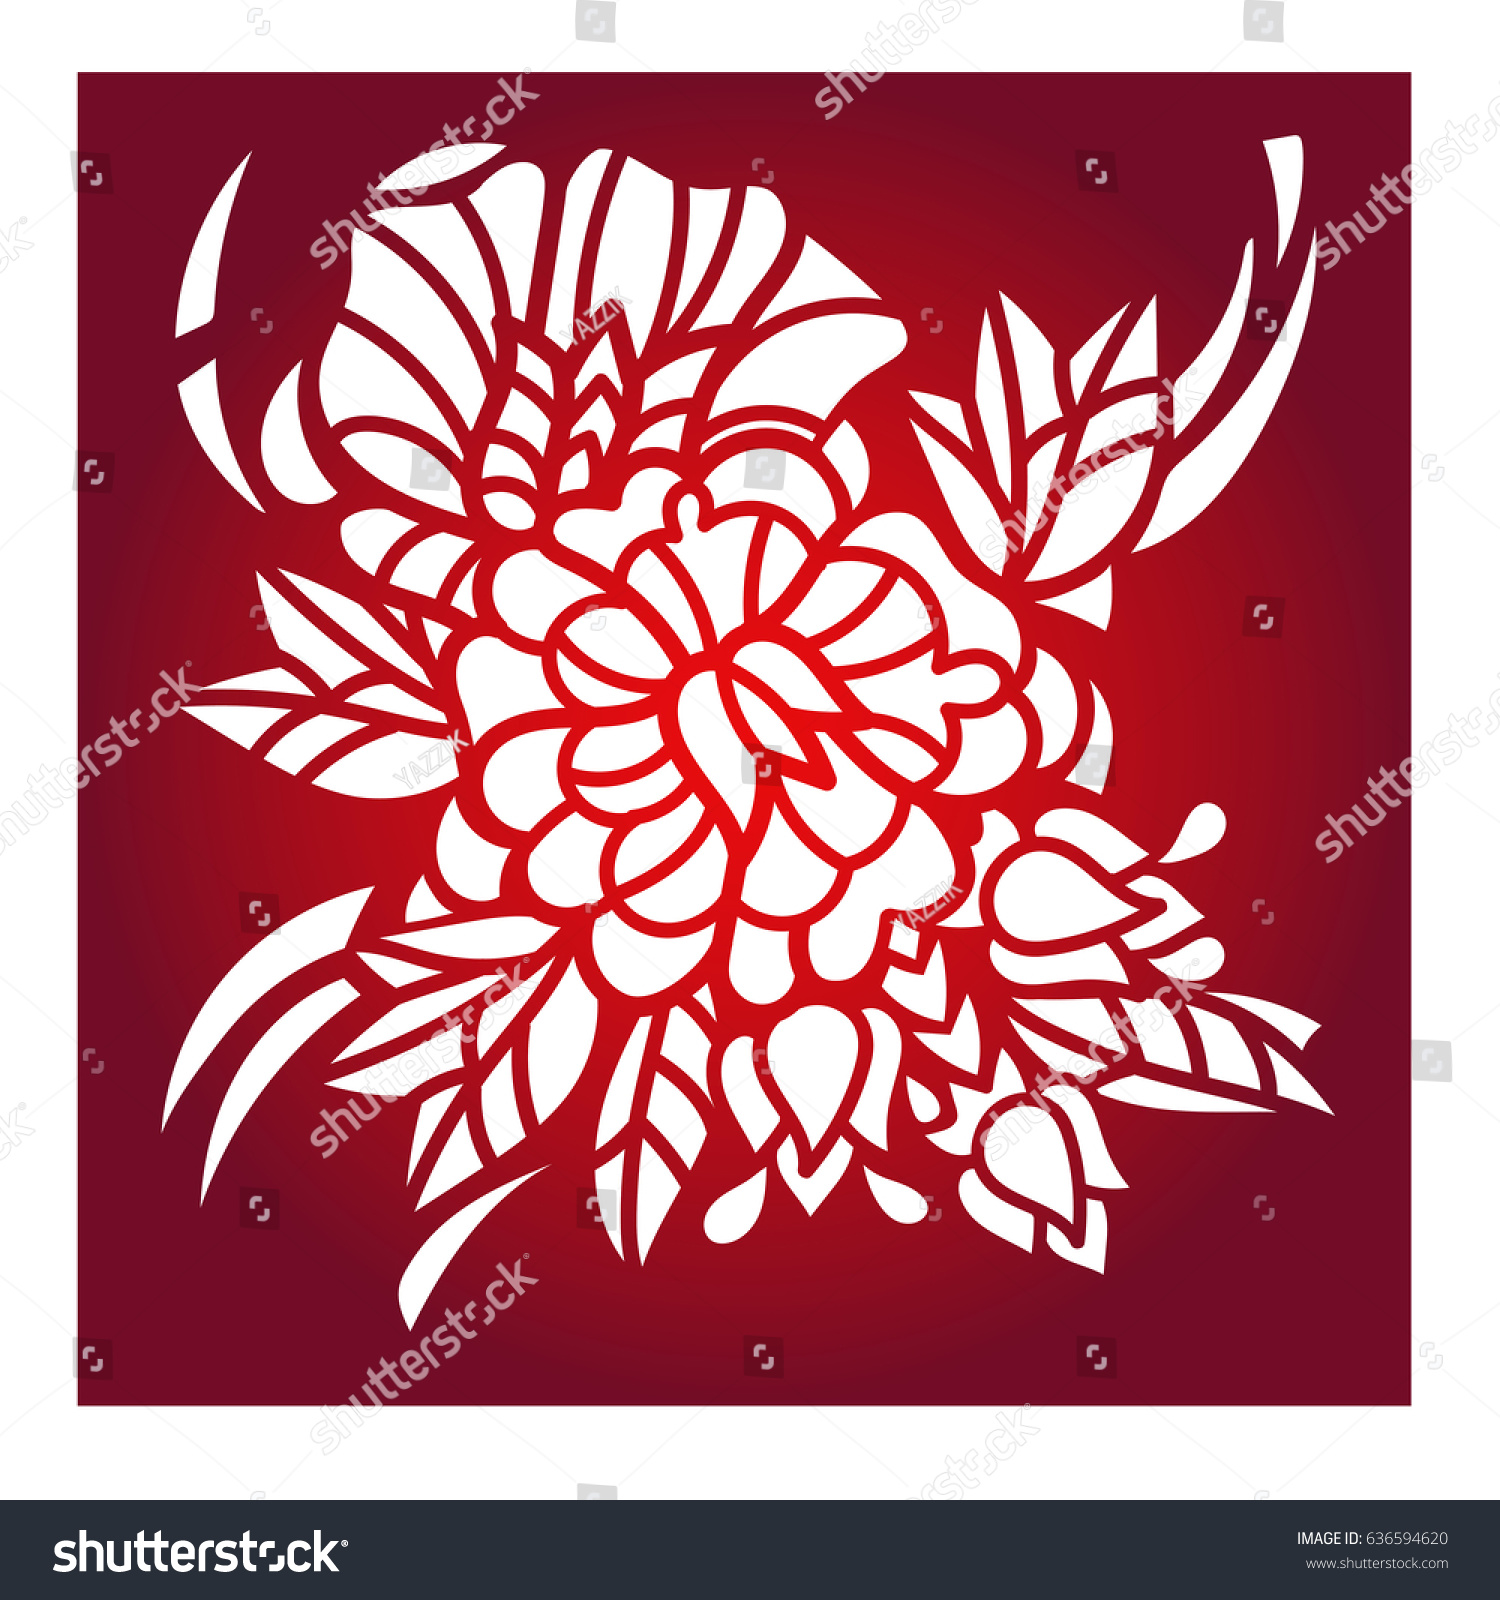 Laser Cut Flower Pattern Decorative Panel Stock Vector (Royalty Free ...